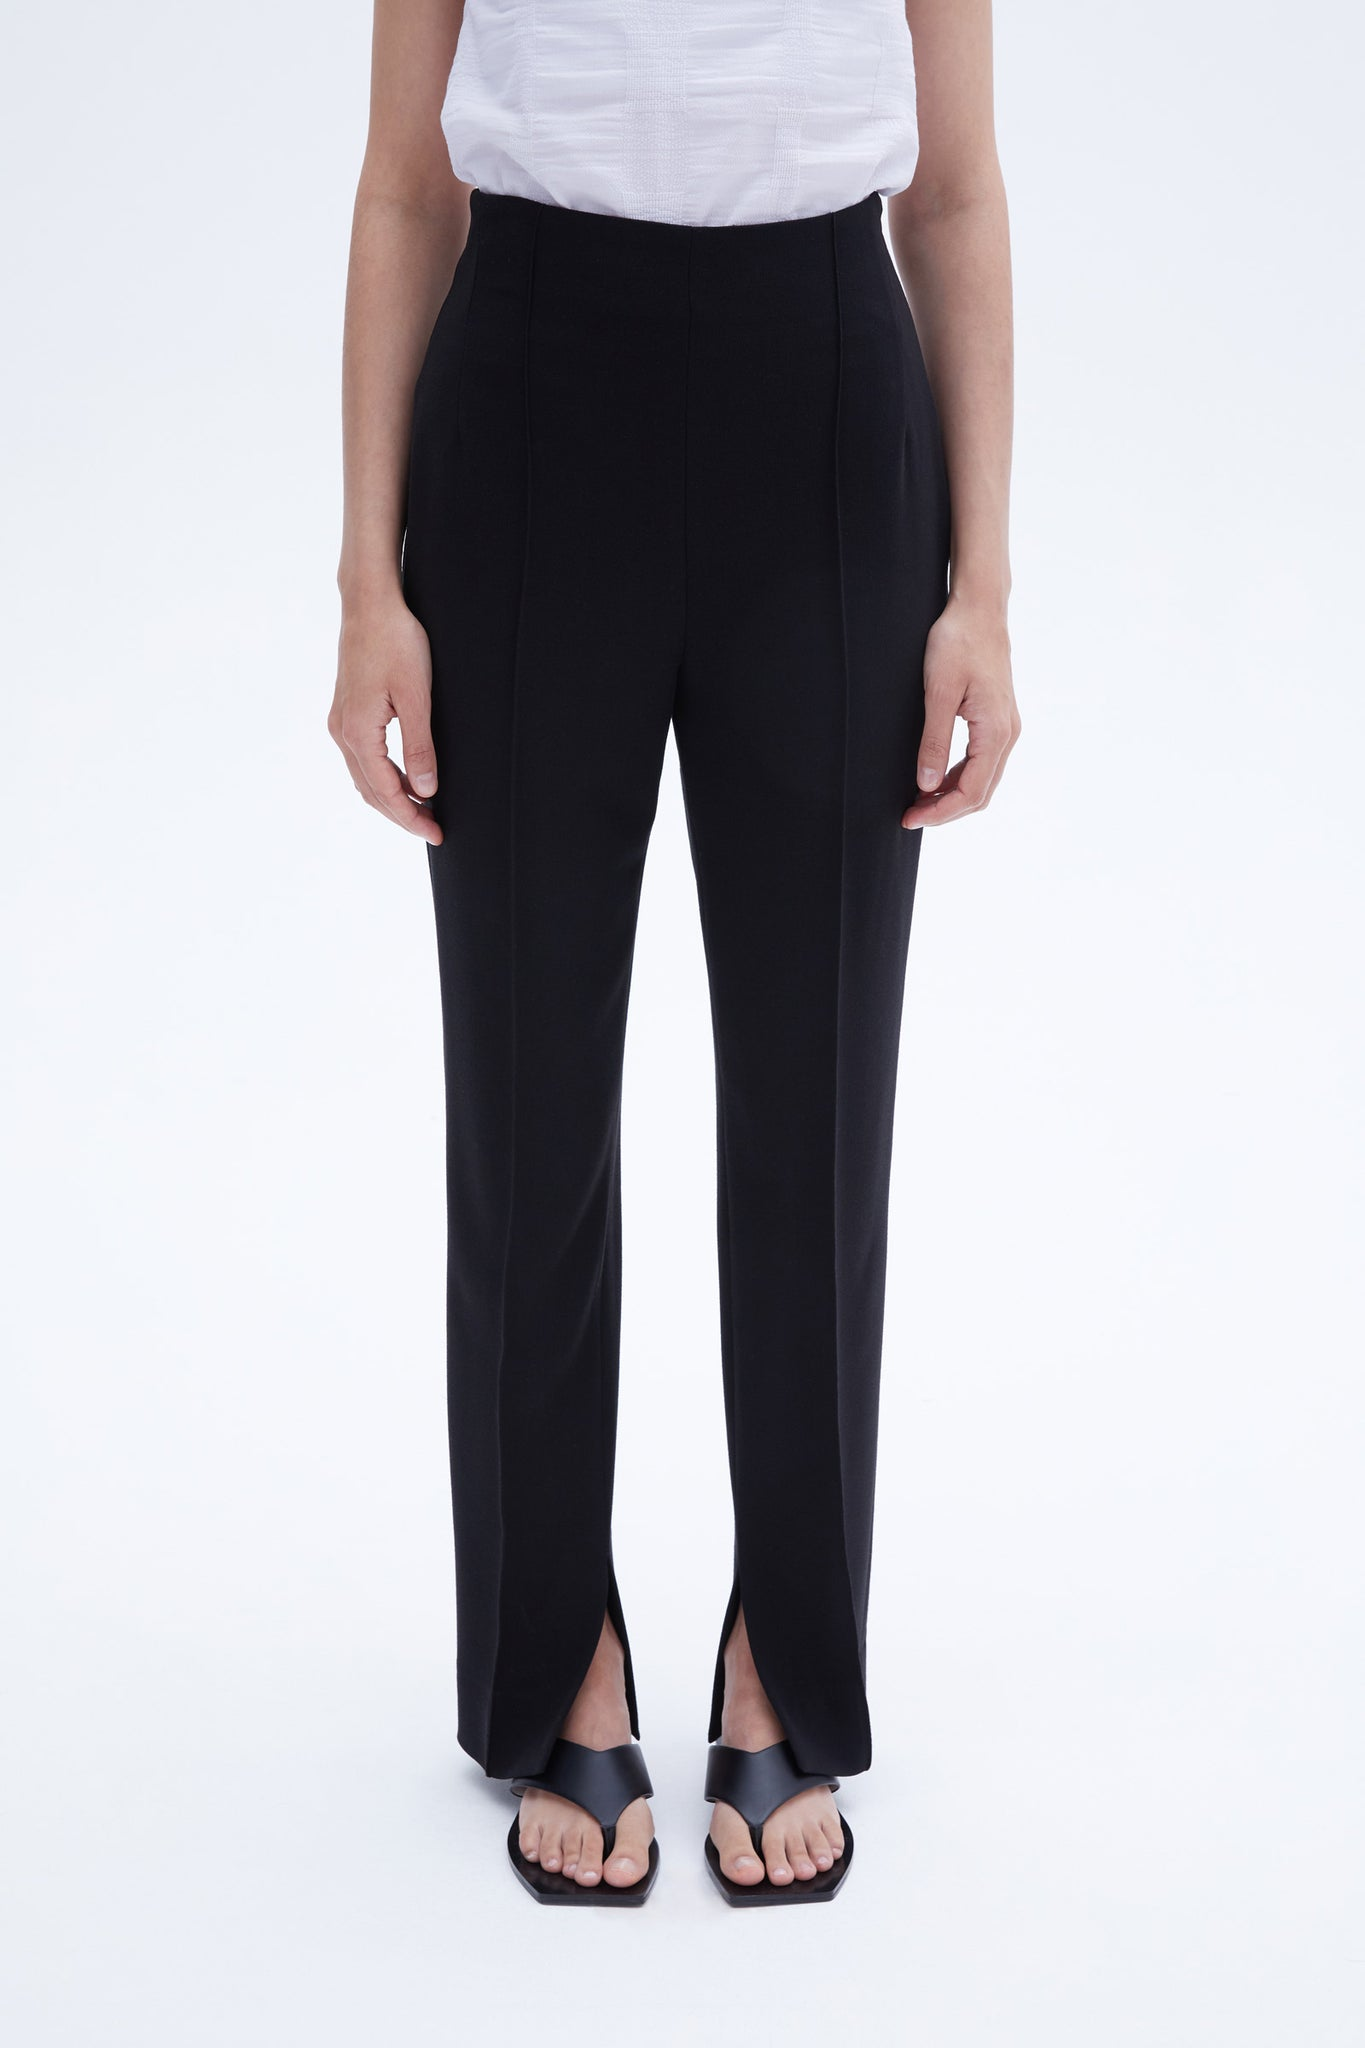 Byano trousers black crepe